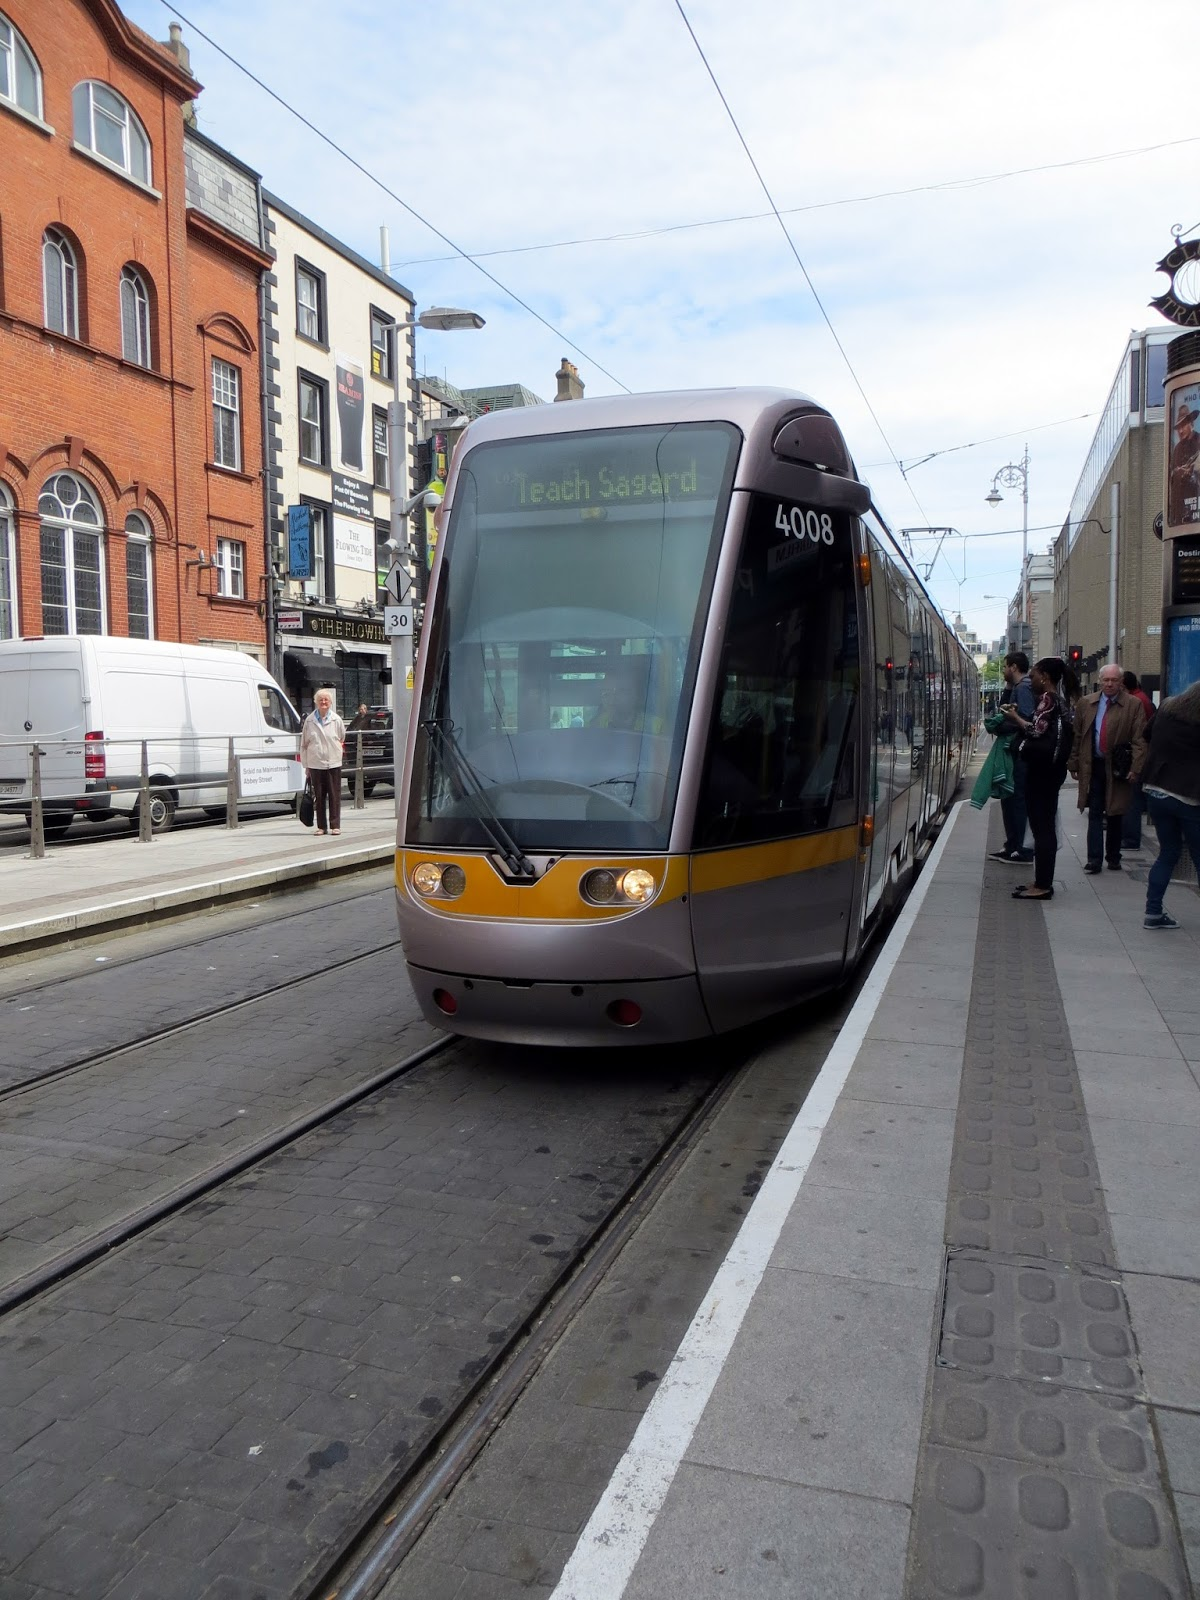 LUAS, Tram, Dublin, Ireland, Europe, things to do in dublin, guide to dublin, travel blog, travelling, the custom house, liffey, ireland photography, dublin photography, eire, Guinness, temple bar, irish pub, traditional, cobbled street, beautiful, dublin spire, O'Connell street, post office